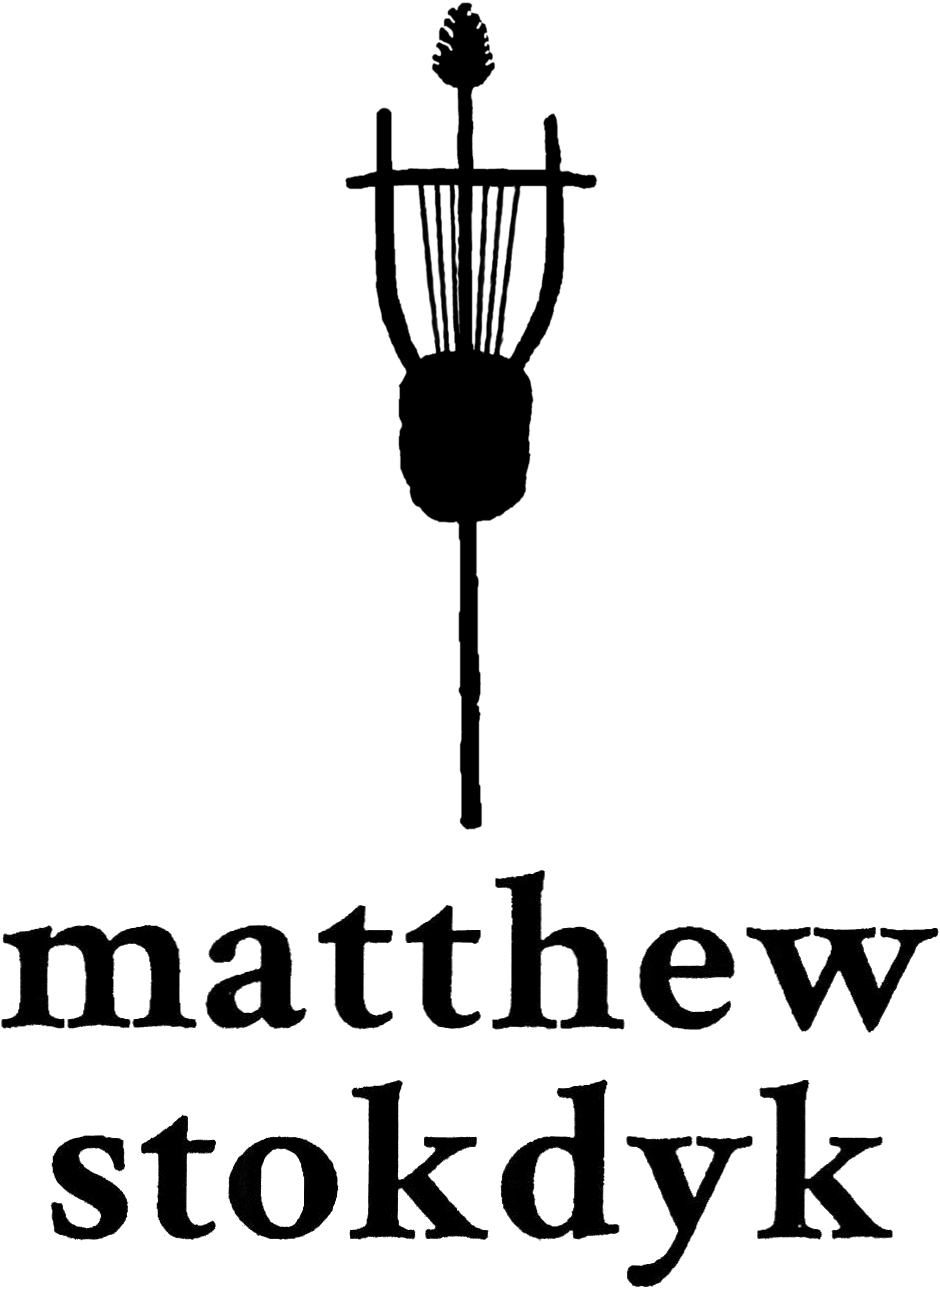 Matthew Stokdyk's logo; a thyrsus and a lyre.